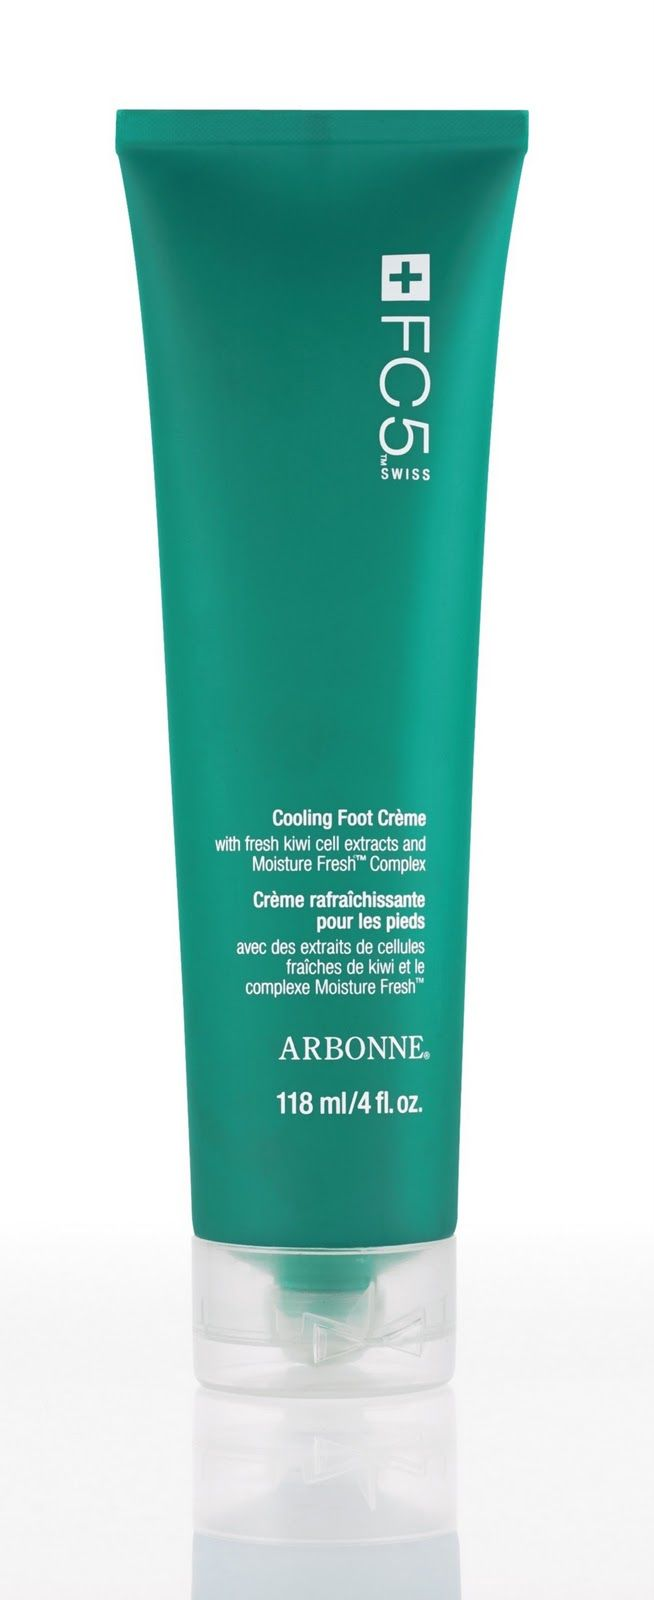 Arbonne Cooling Foot Cream Can Also Be Used As A Deodorant